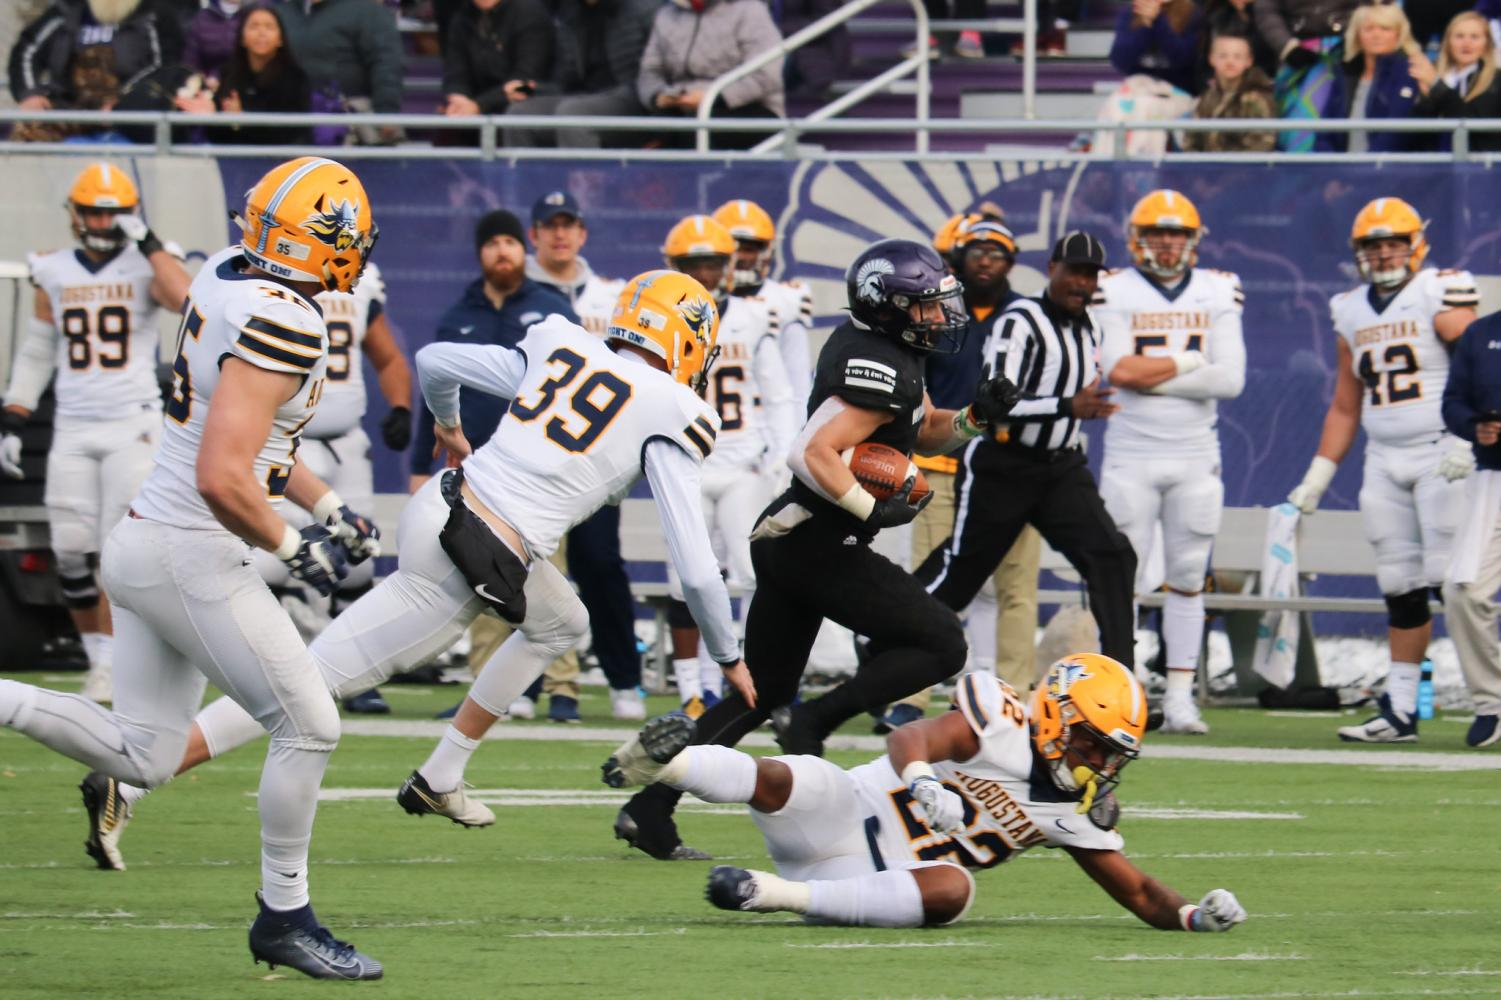 Winona State junior wide receiver Jake Balliu dodges Augustana players as he advances the football down the field at the Winona State vs. Augustana game on Saturday, Nov 9. Despite their efforts, the Warriors fell 25-26 to Augustana.